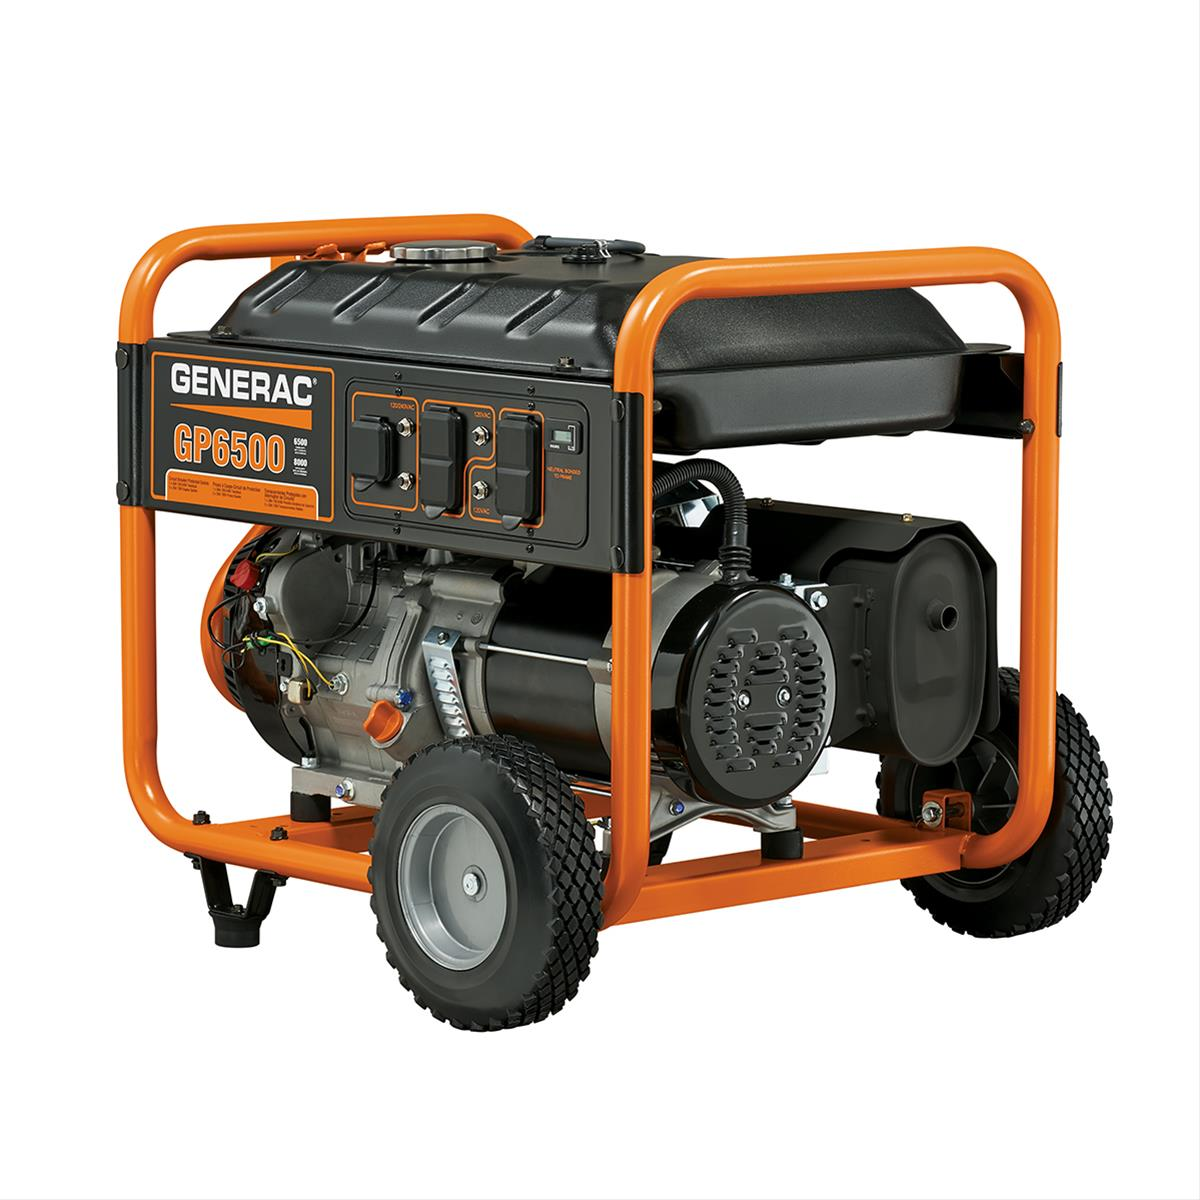 hight resolution of generac gp series portable generators 5976 free shipping on most orders over 99 at dx engineering